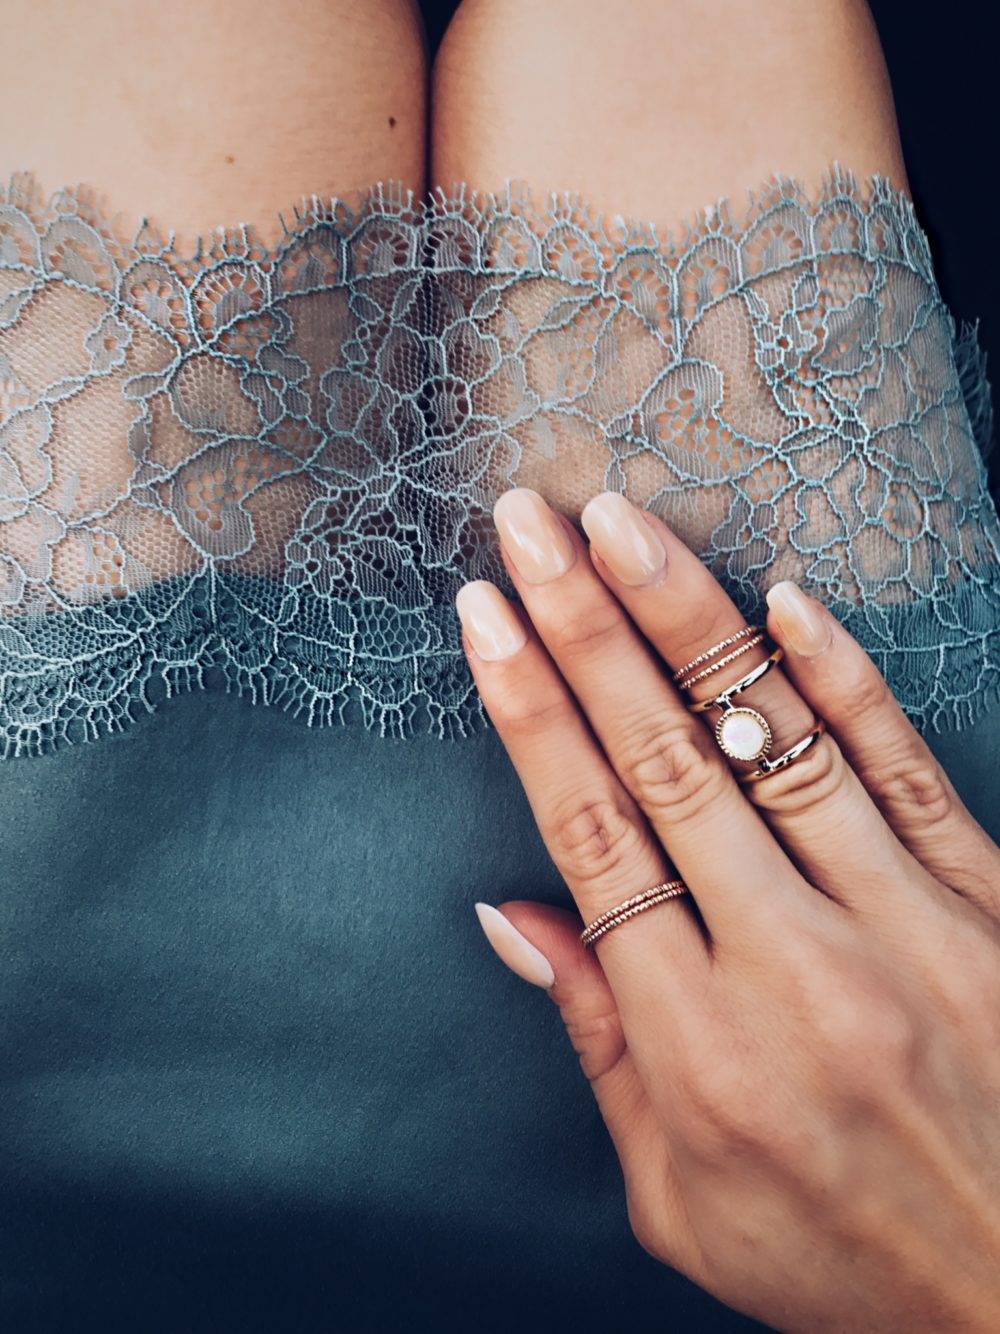 teal-lace-4.jpg